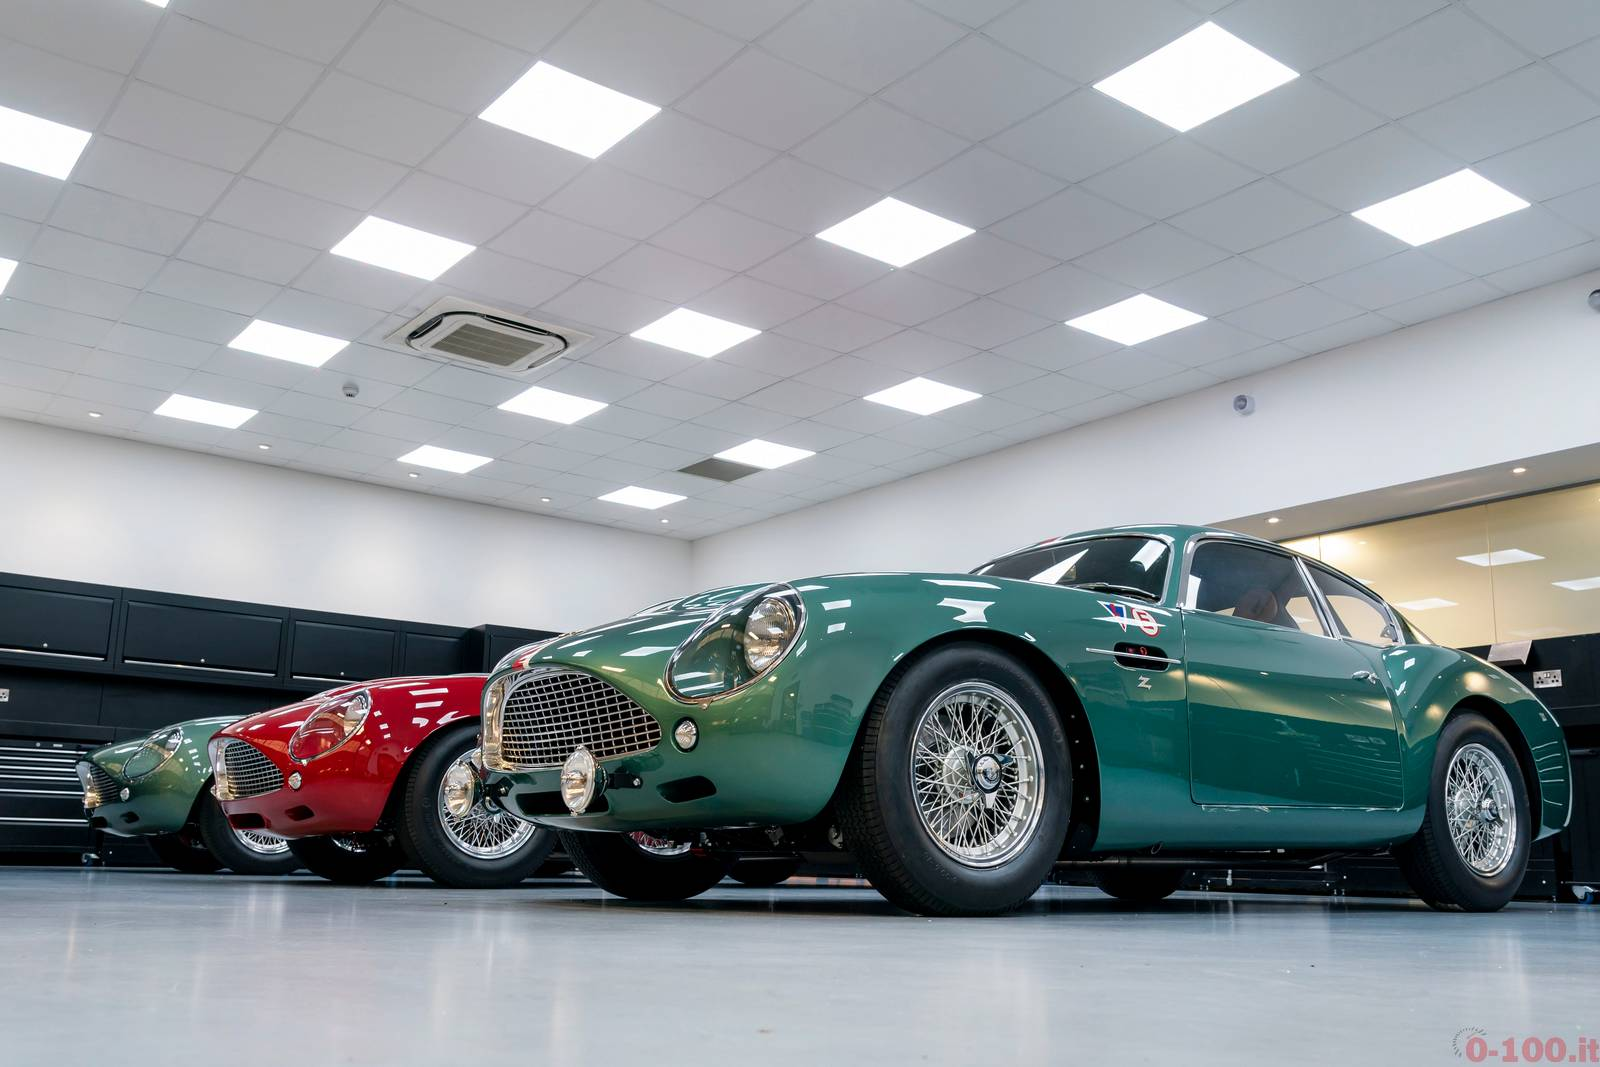 martin_db4_gtz_sanction_3_zagato_centenary_collection_0-100_5